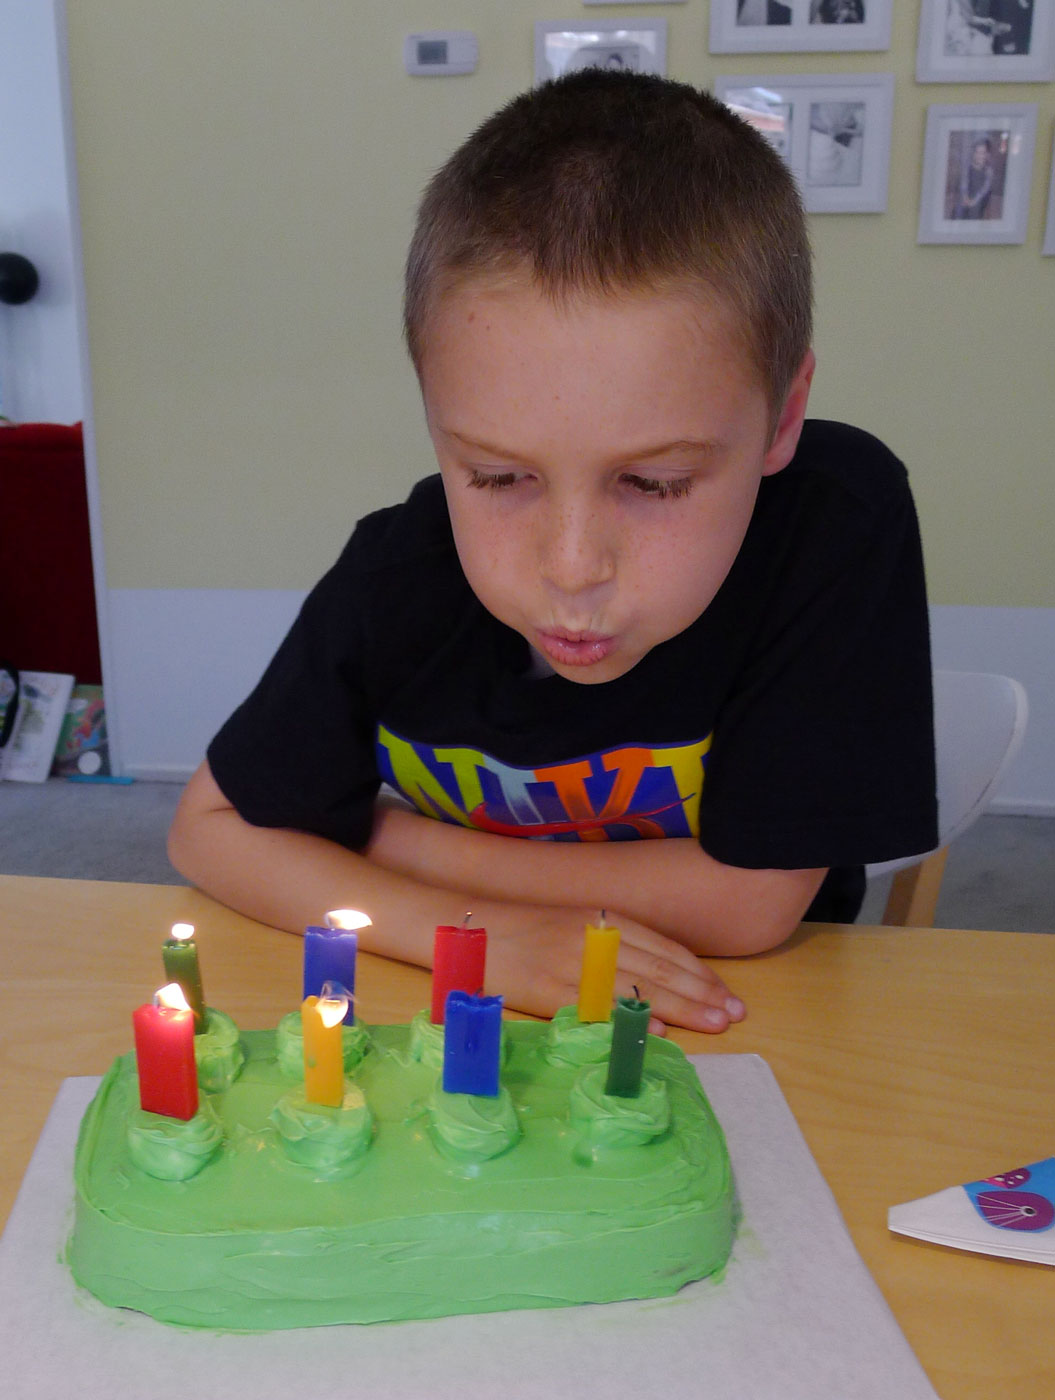 the birthday boy makes a wish and blows out the candles